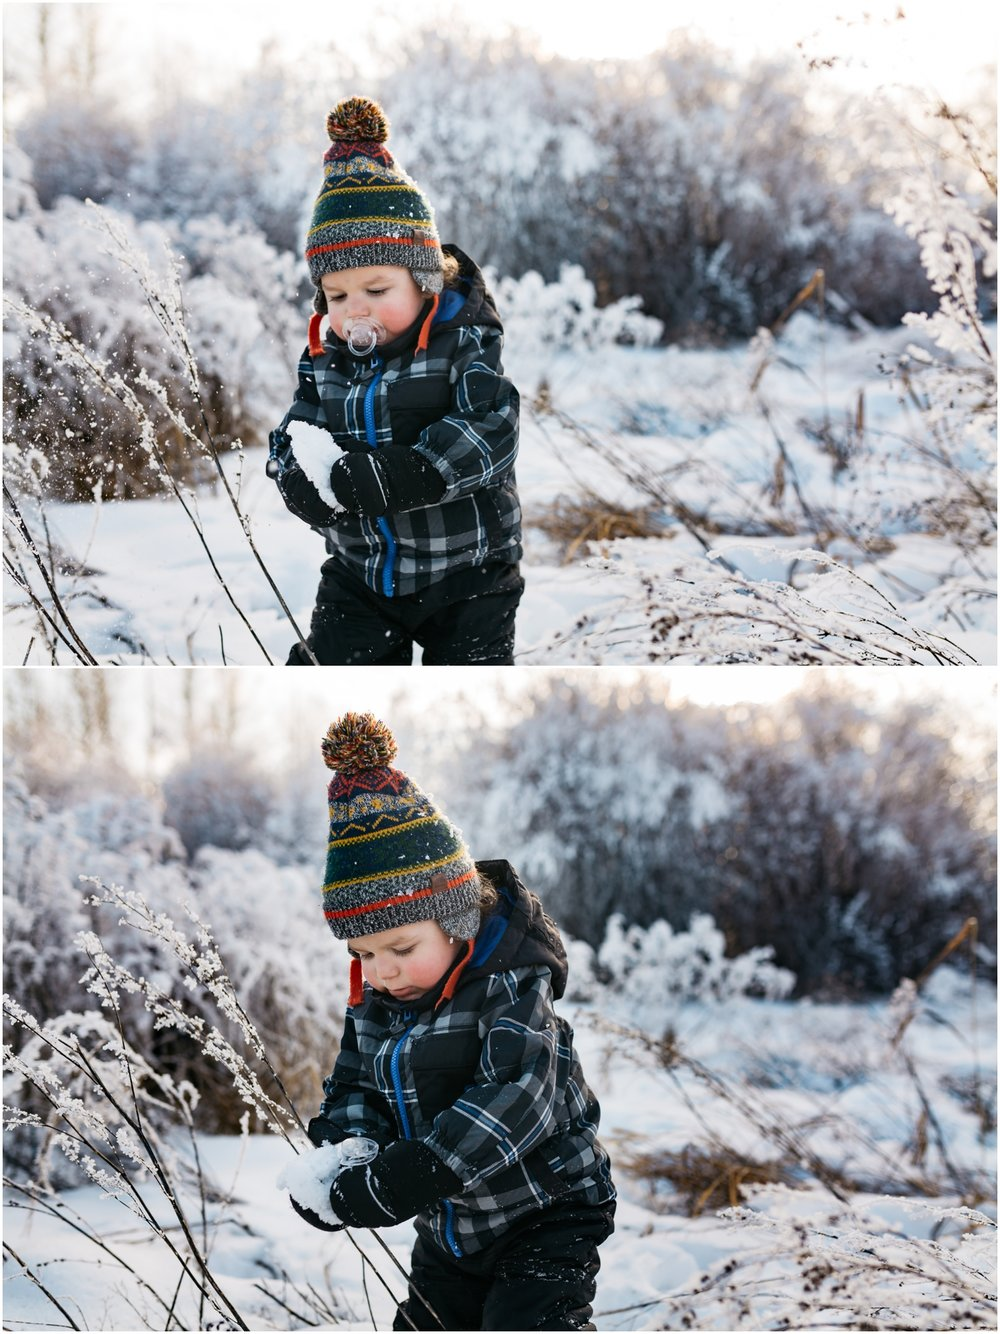 Treelines Photography - Edmonton Photographer - Snow Play - Edmonton Hoar Frost